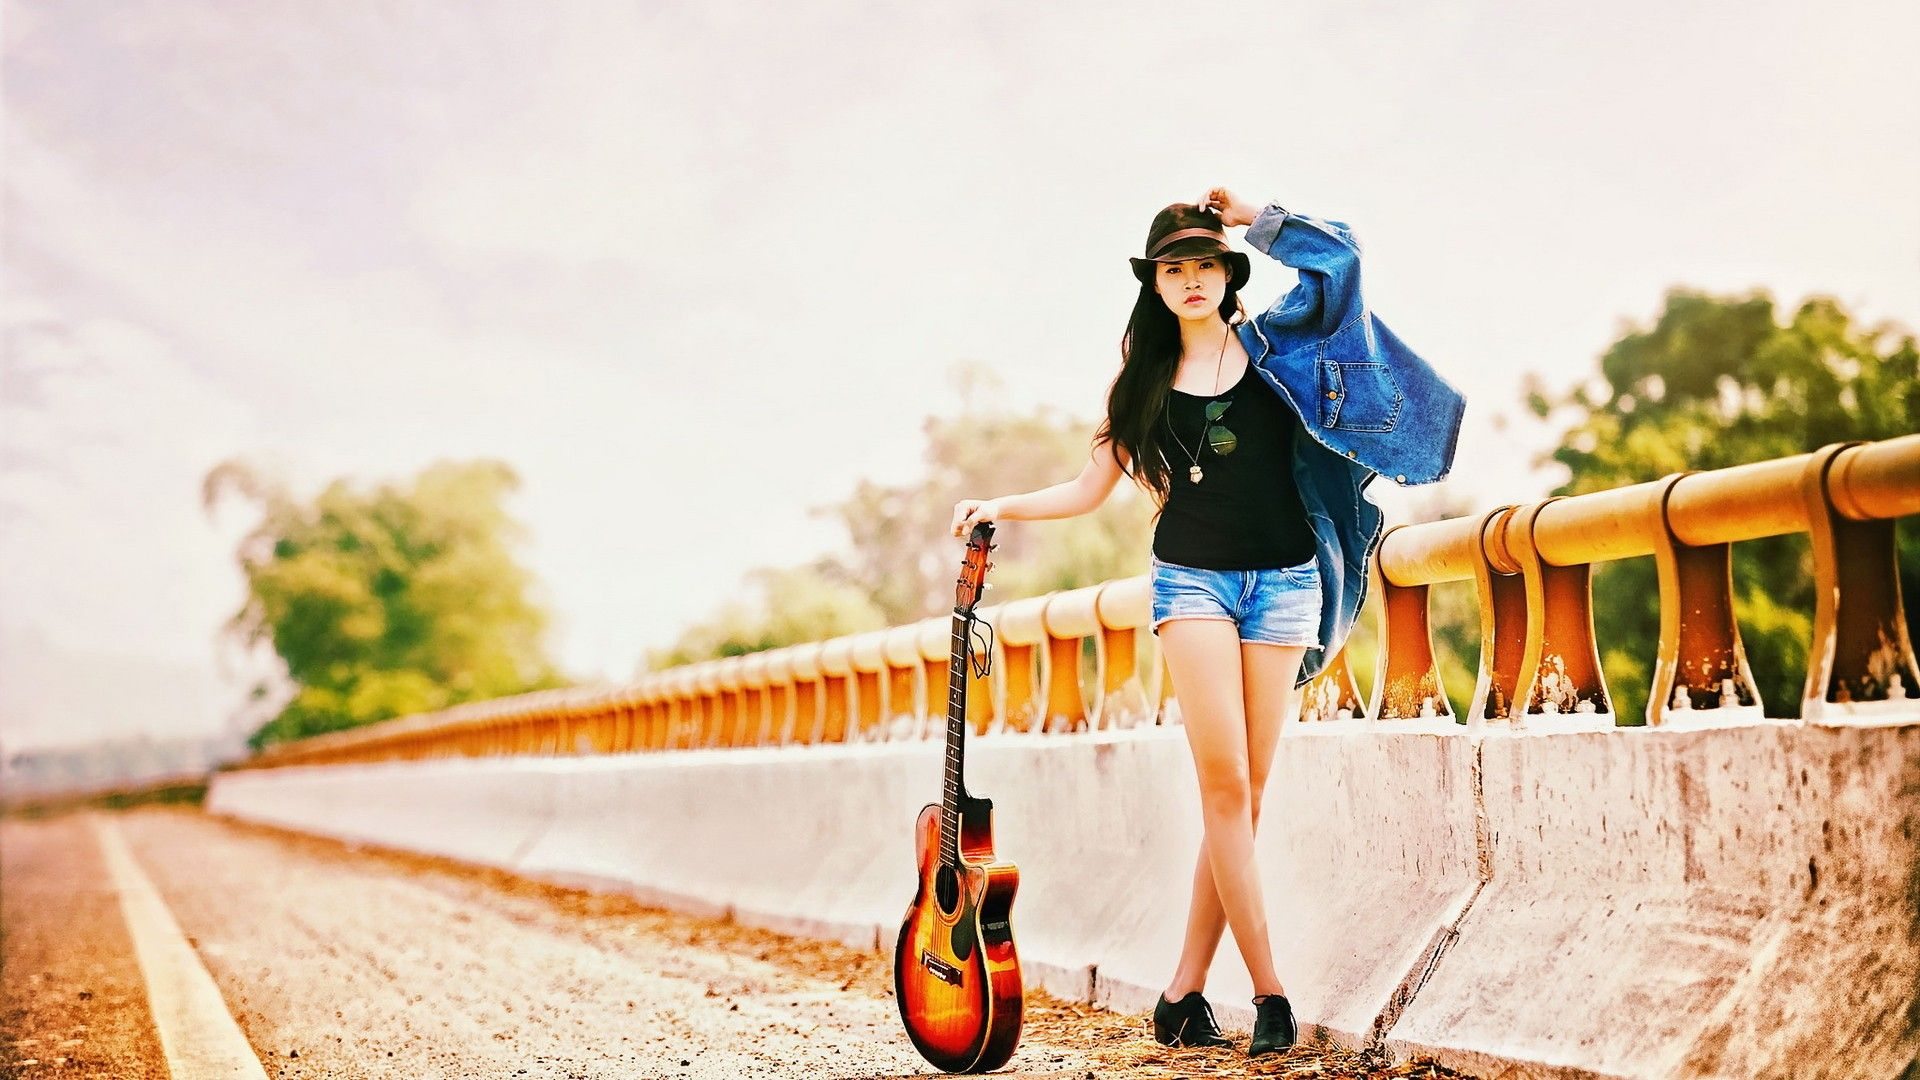 Girls Guitars 1920X1080 HD Wallpapers ...